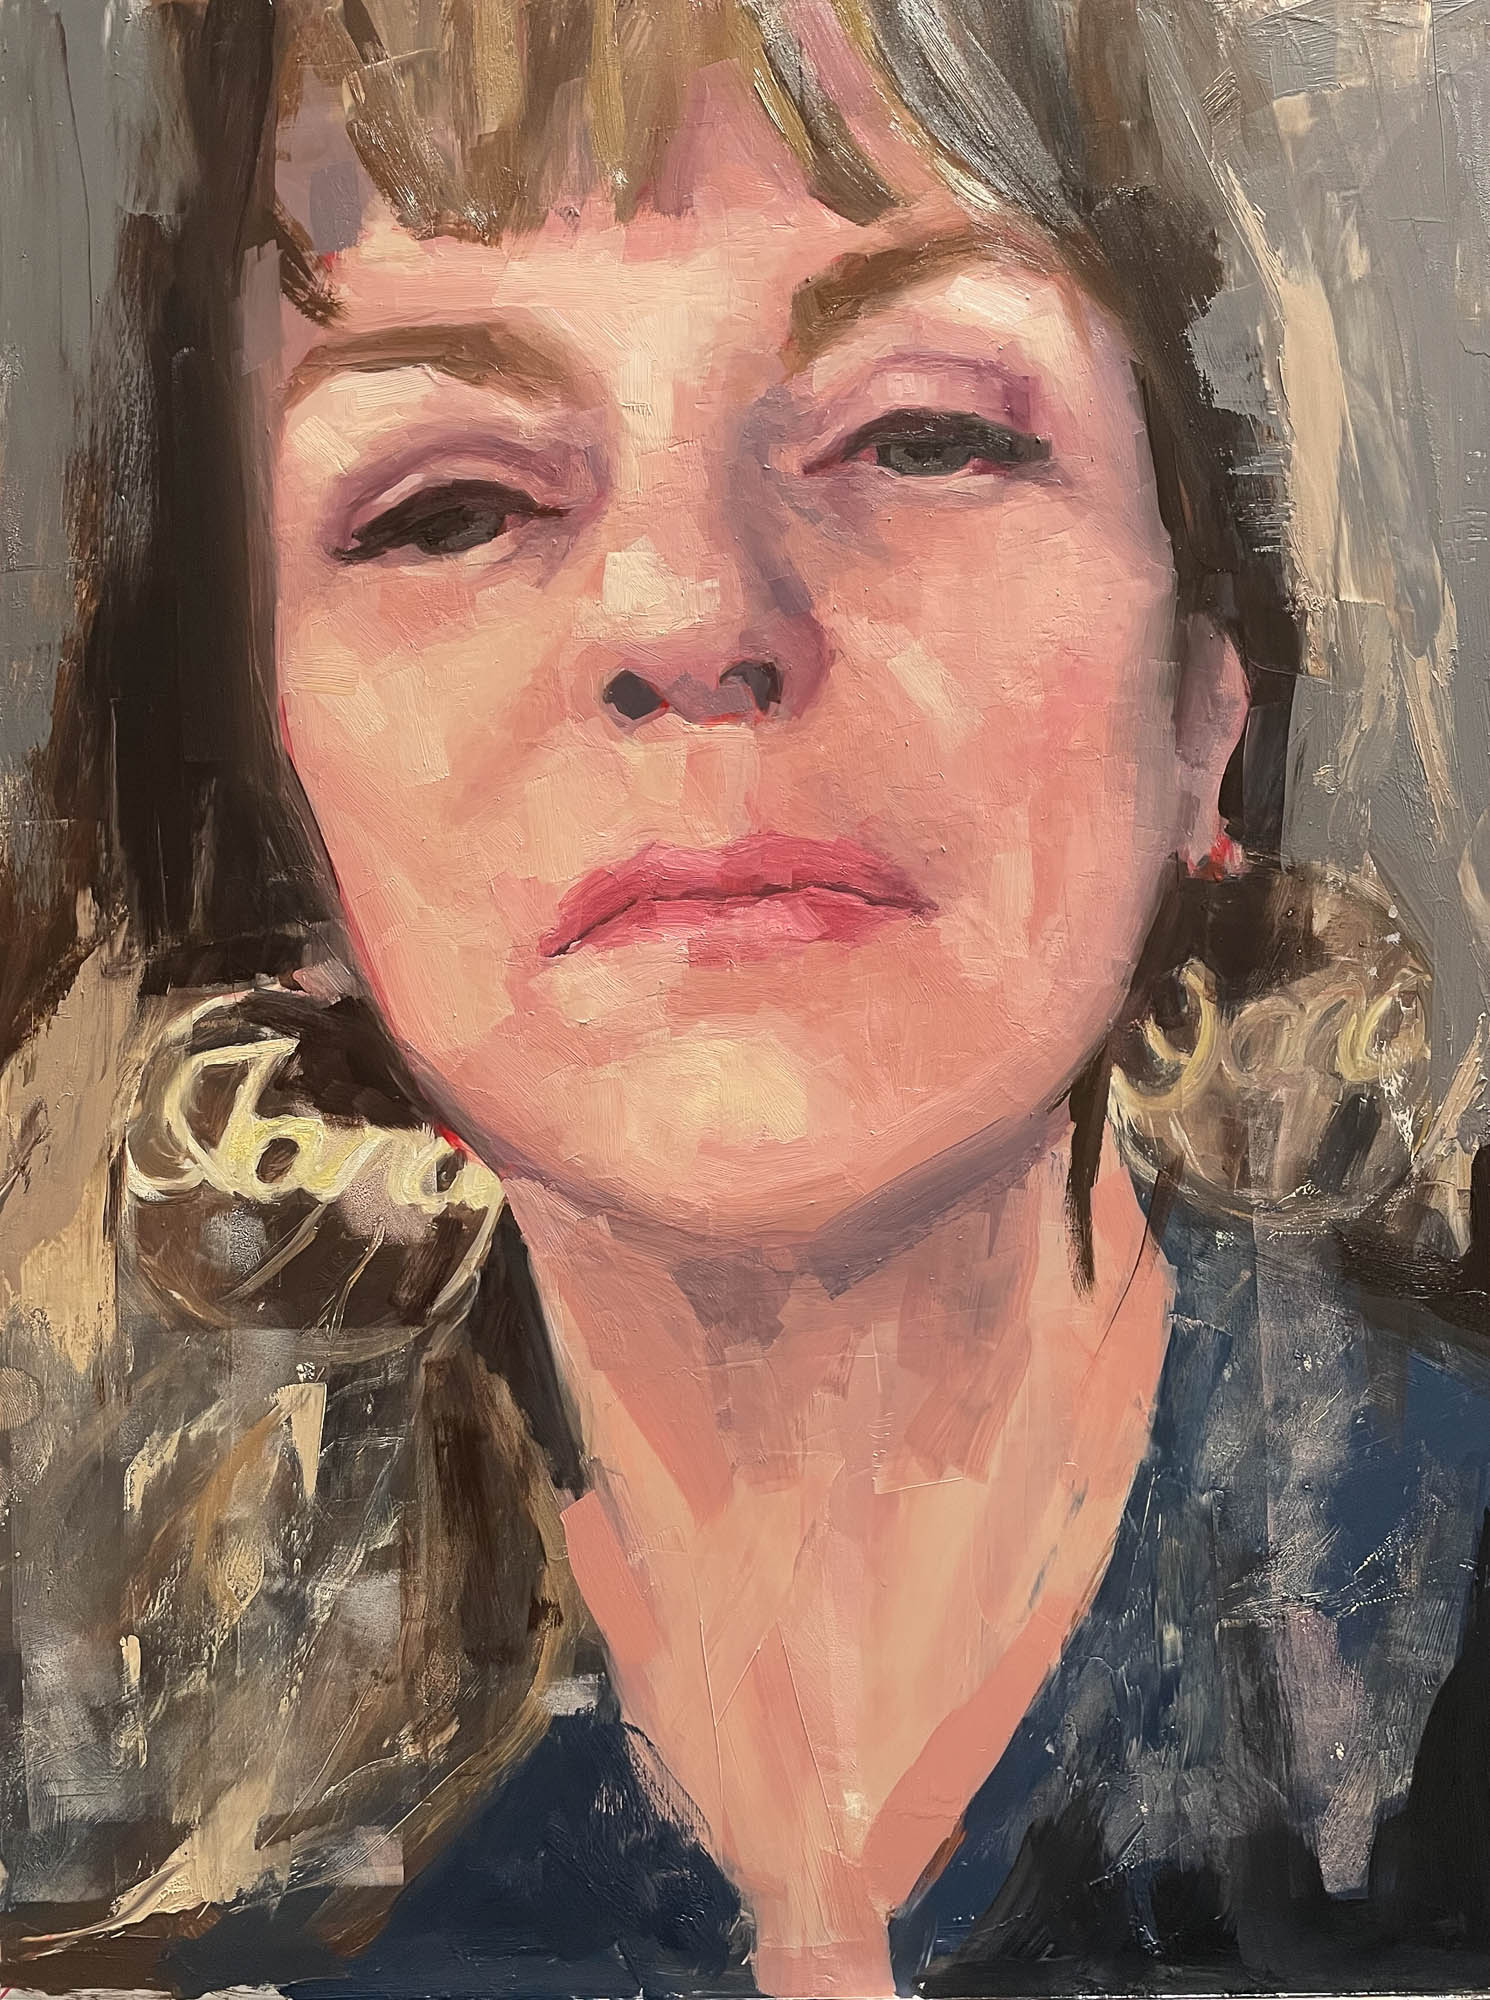 Jana, 2021, Oil on Panel, 20 x 16 inches